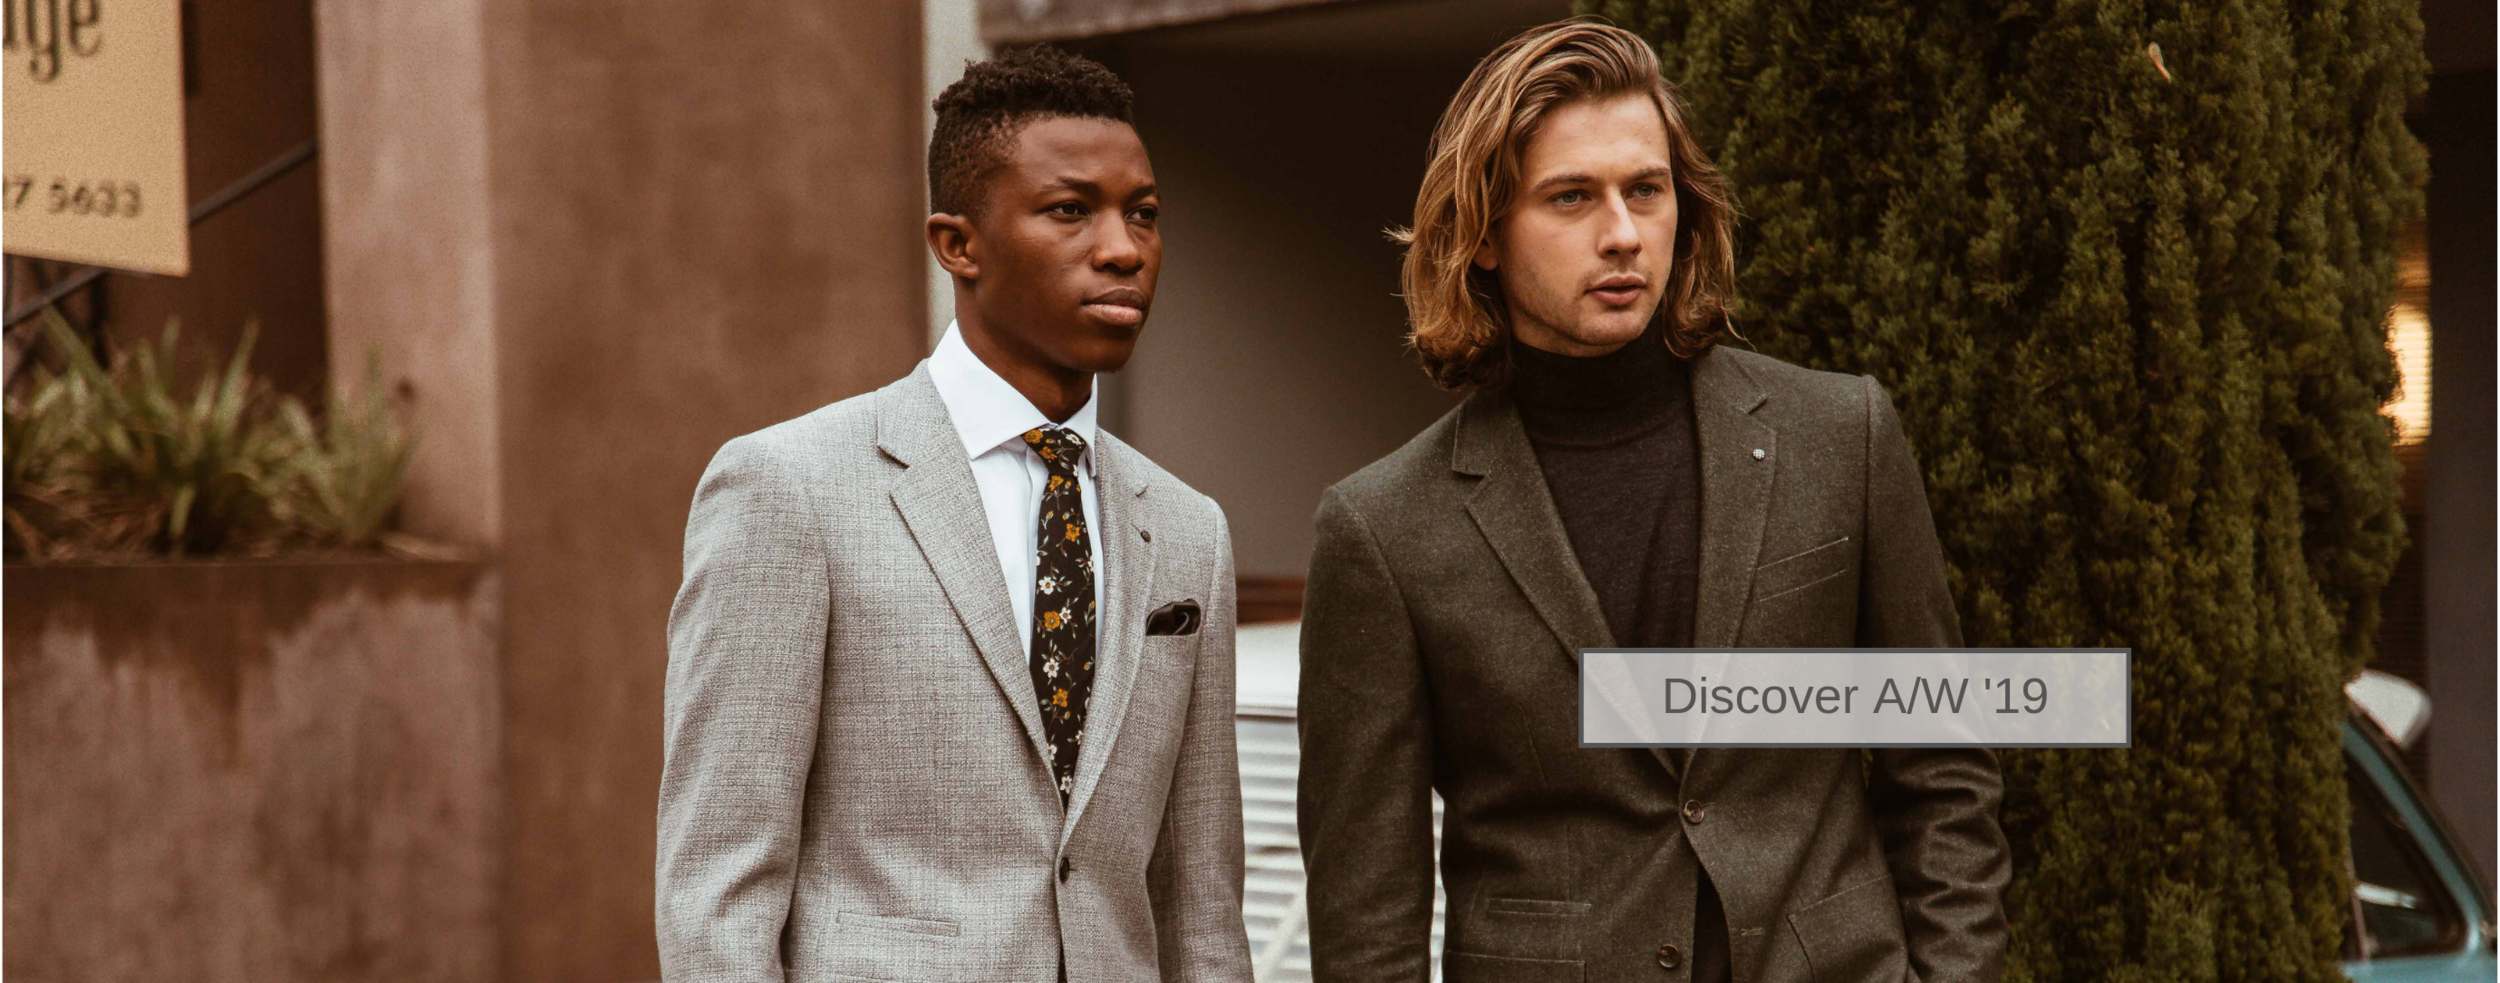 the best attitude 2a1d4 5626a Suits, Jackets, Trousers, Shirts, Polos | Daniel Hechter ...